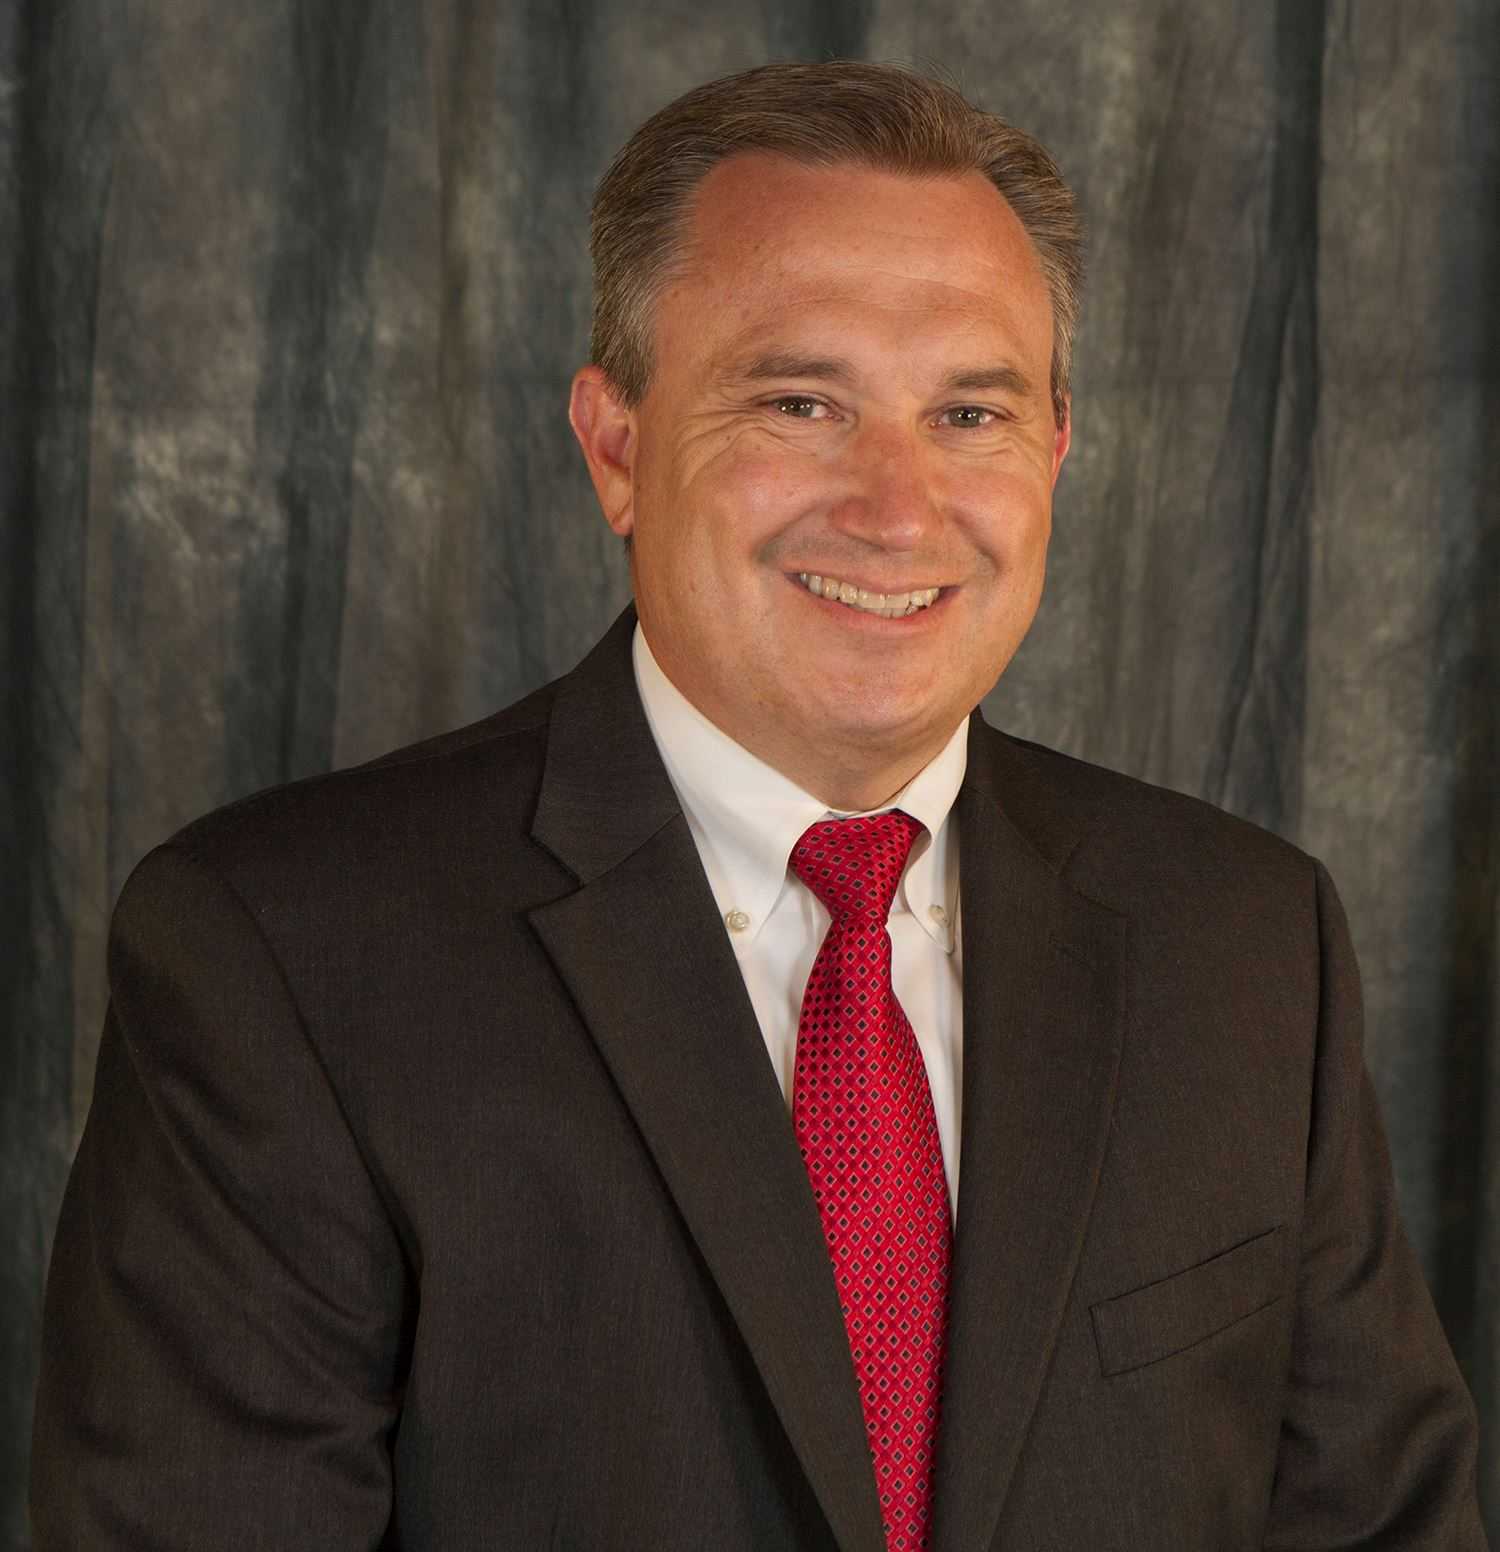 9-8-15 Cliff Keheley selected as new City of Mesquite City Manager